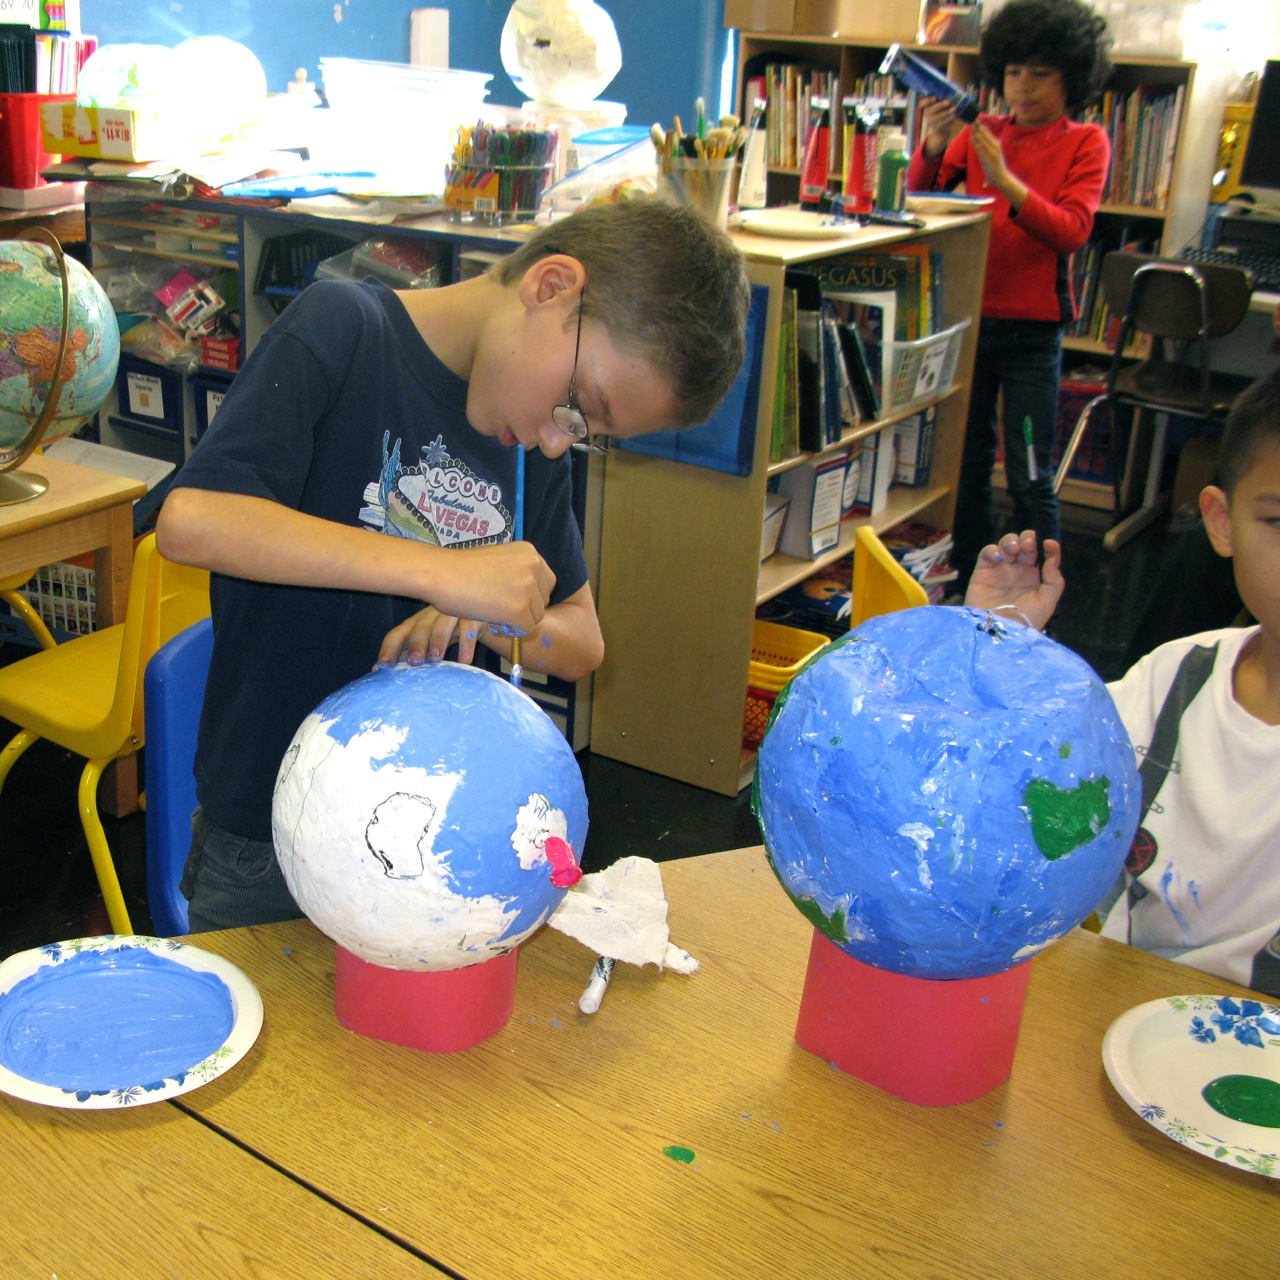 Five projects to juice up geography scholastic project 5 paper mache globes gumiabroncs Choice Image